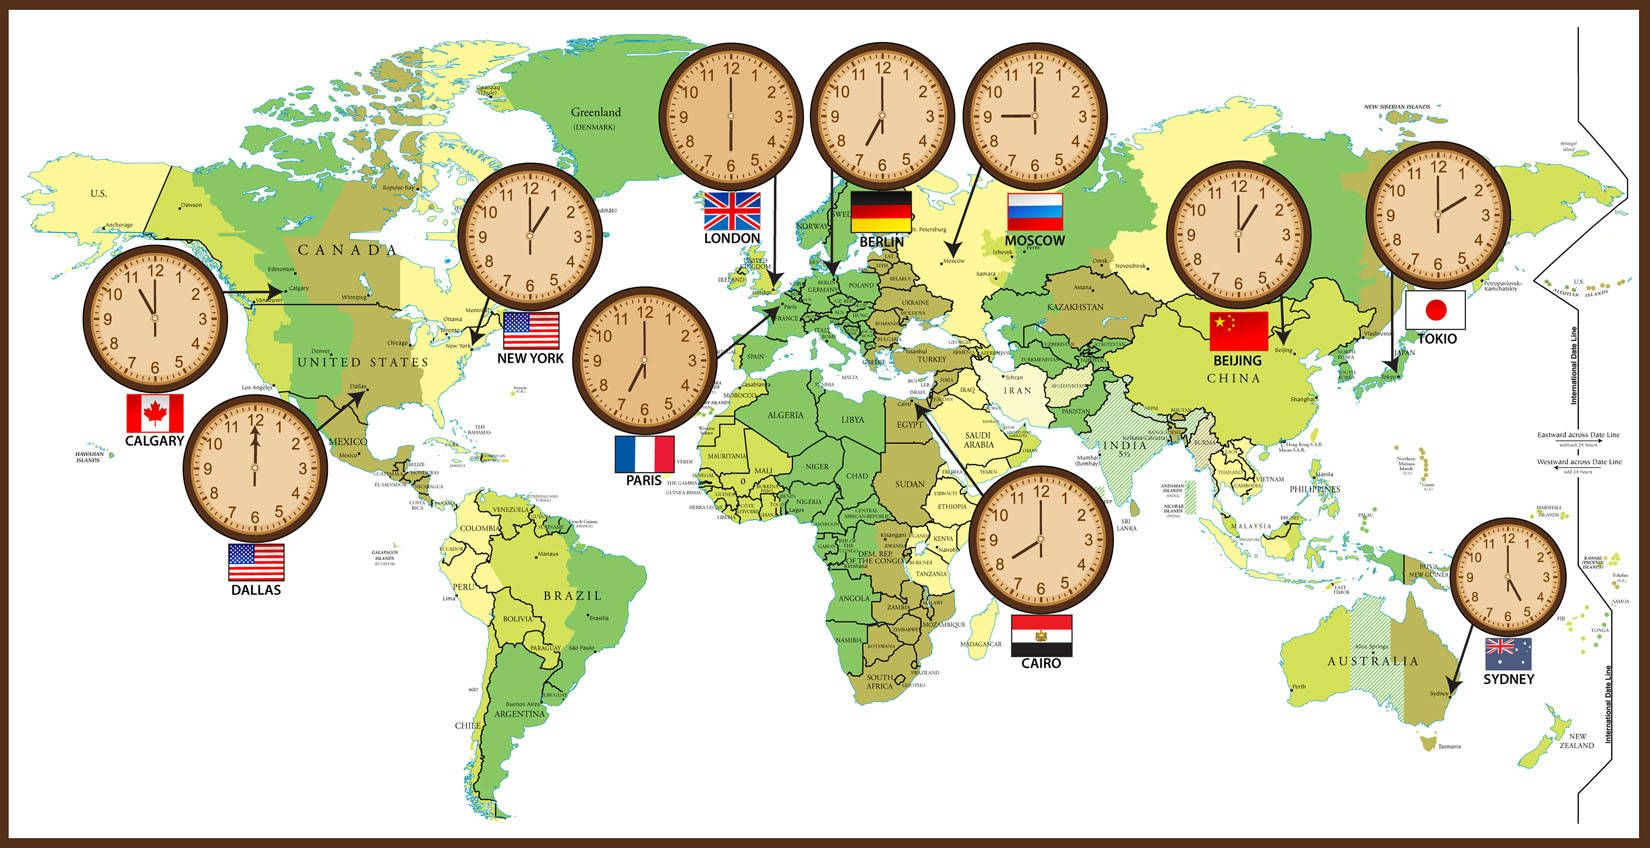 Regional settings updated with an extended list of supported time list of supported time zones httpprovidesupportblog20130322regional settings updated with an extended list of supported time zones gumiabroncs